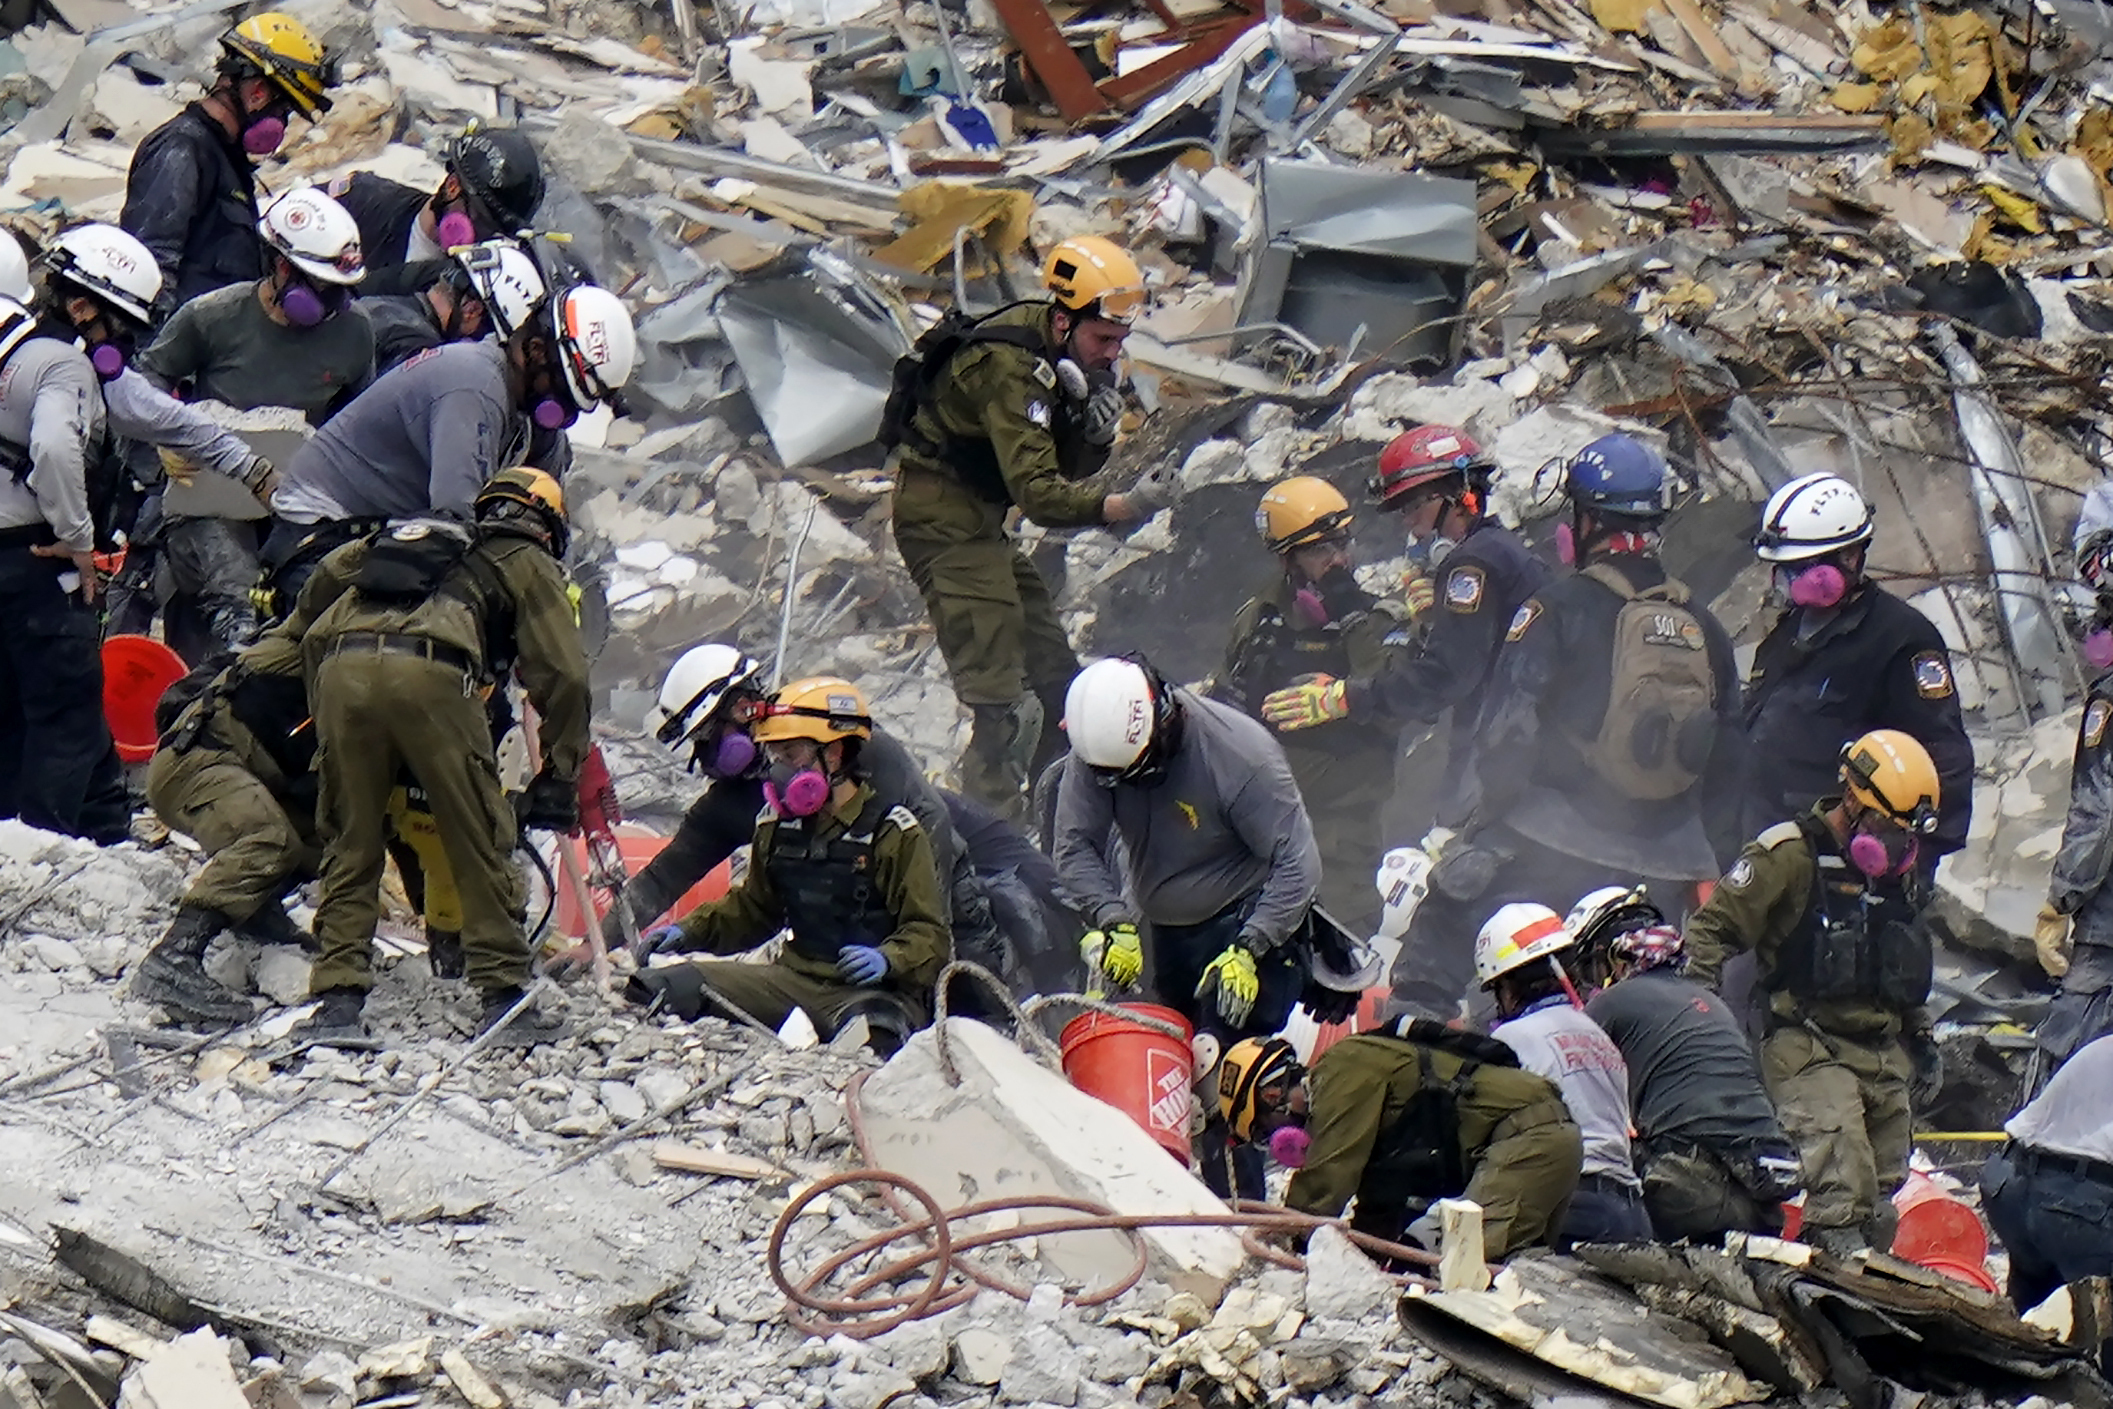 Crews from the United States and Israel work in the rubble Champlain Towers South condo in Surfside, Fla, on June 29, 2021.